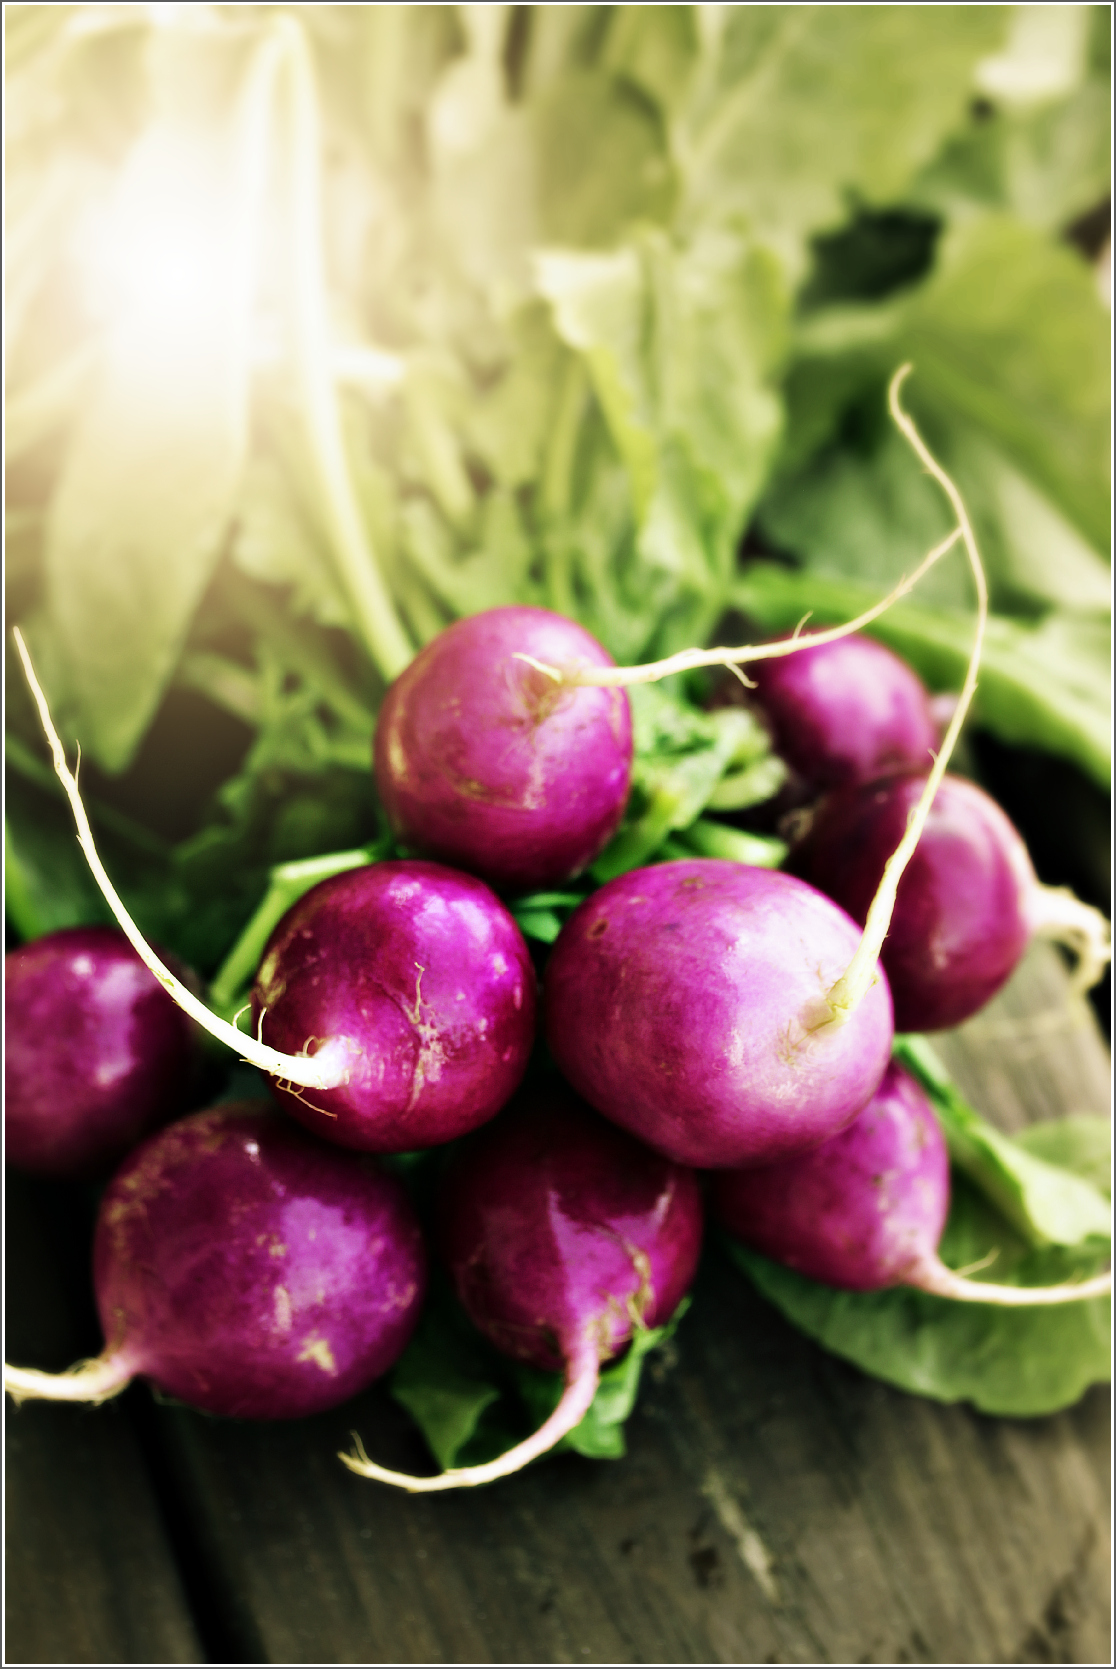 Purple Radishes On Wood with Sunlight by Dena T Bray©